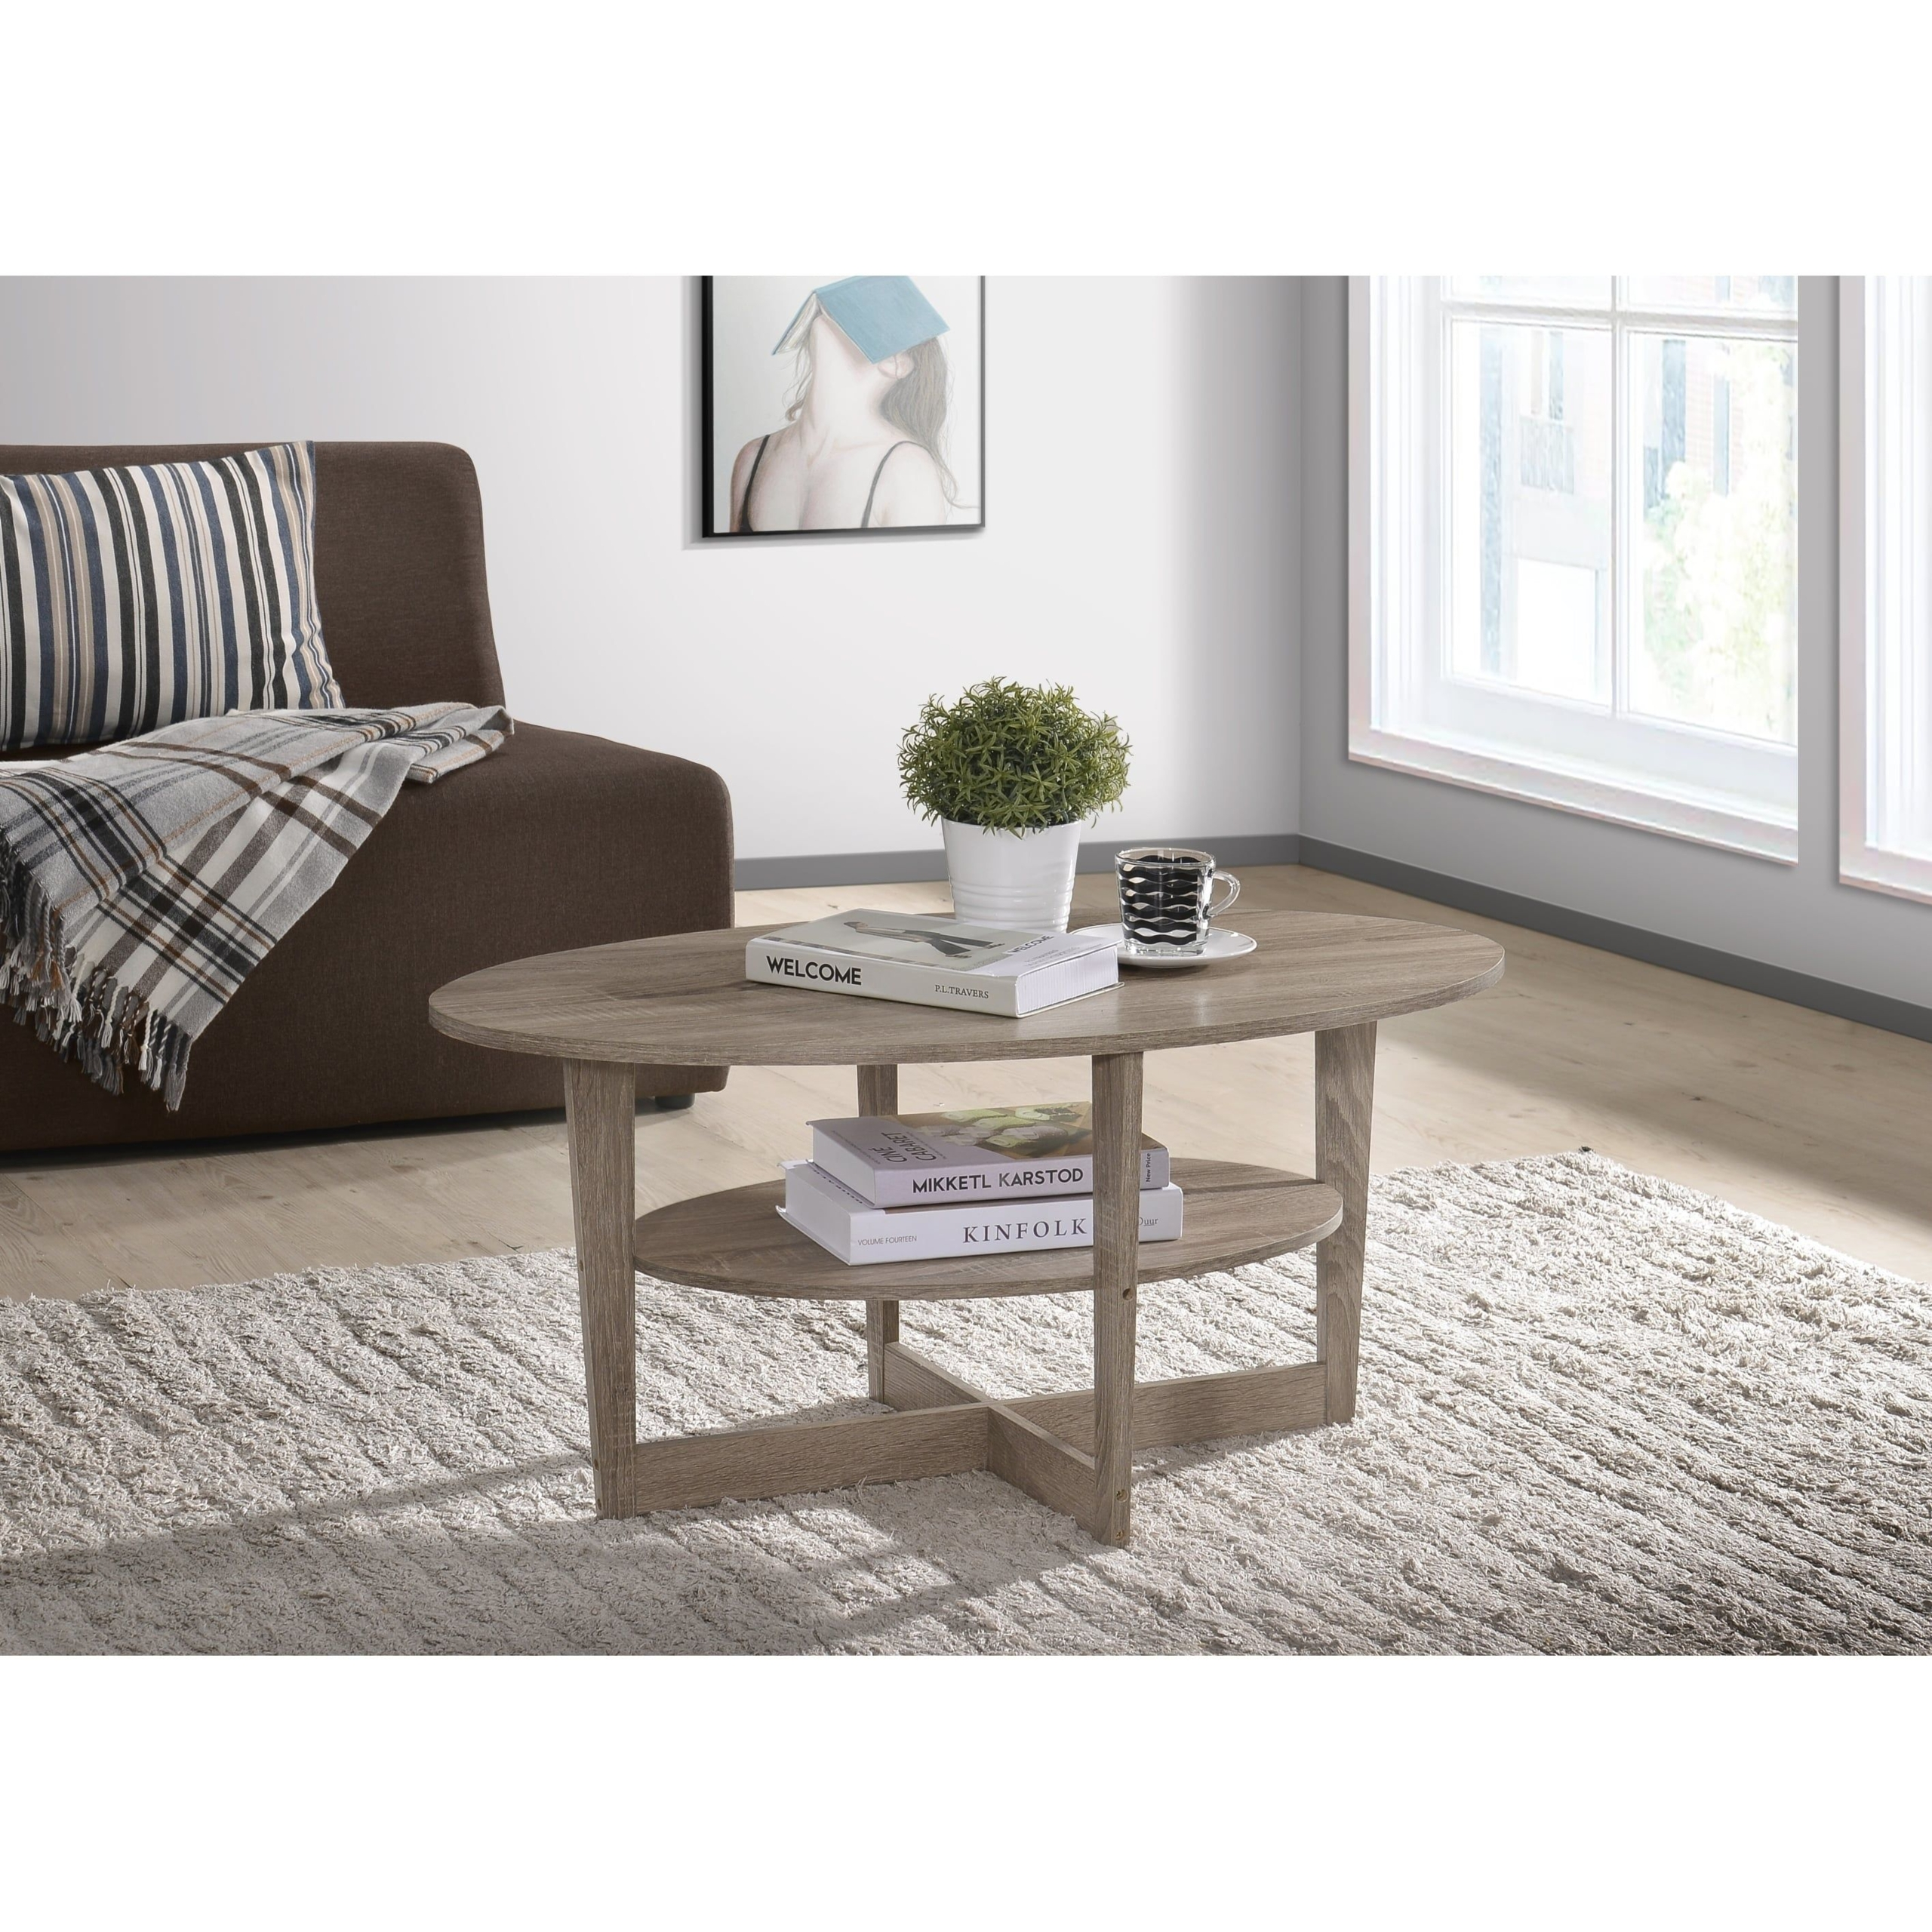 Coffee Table For Small Space You Ll Love In 2021 Visualhunt